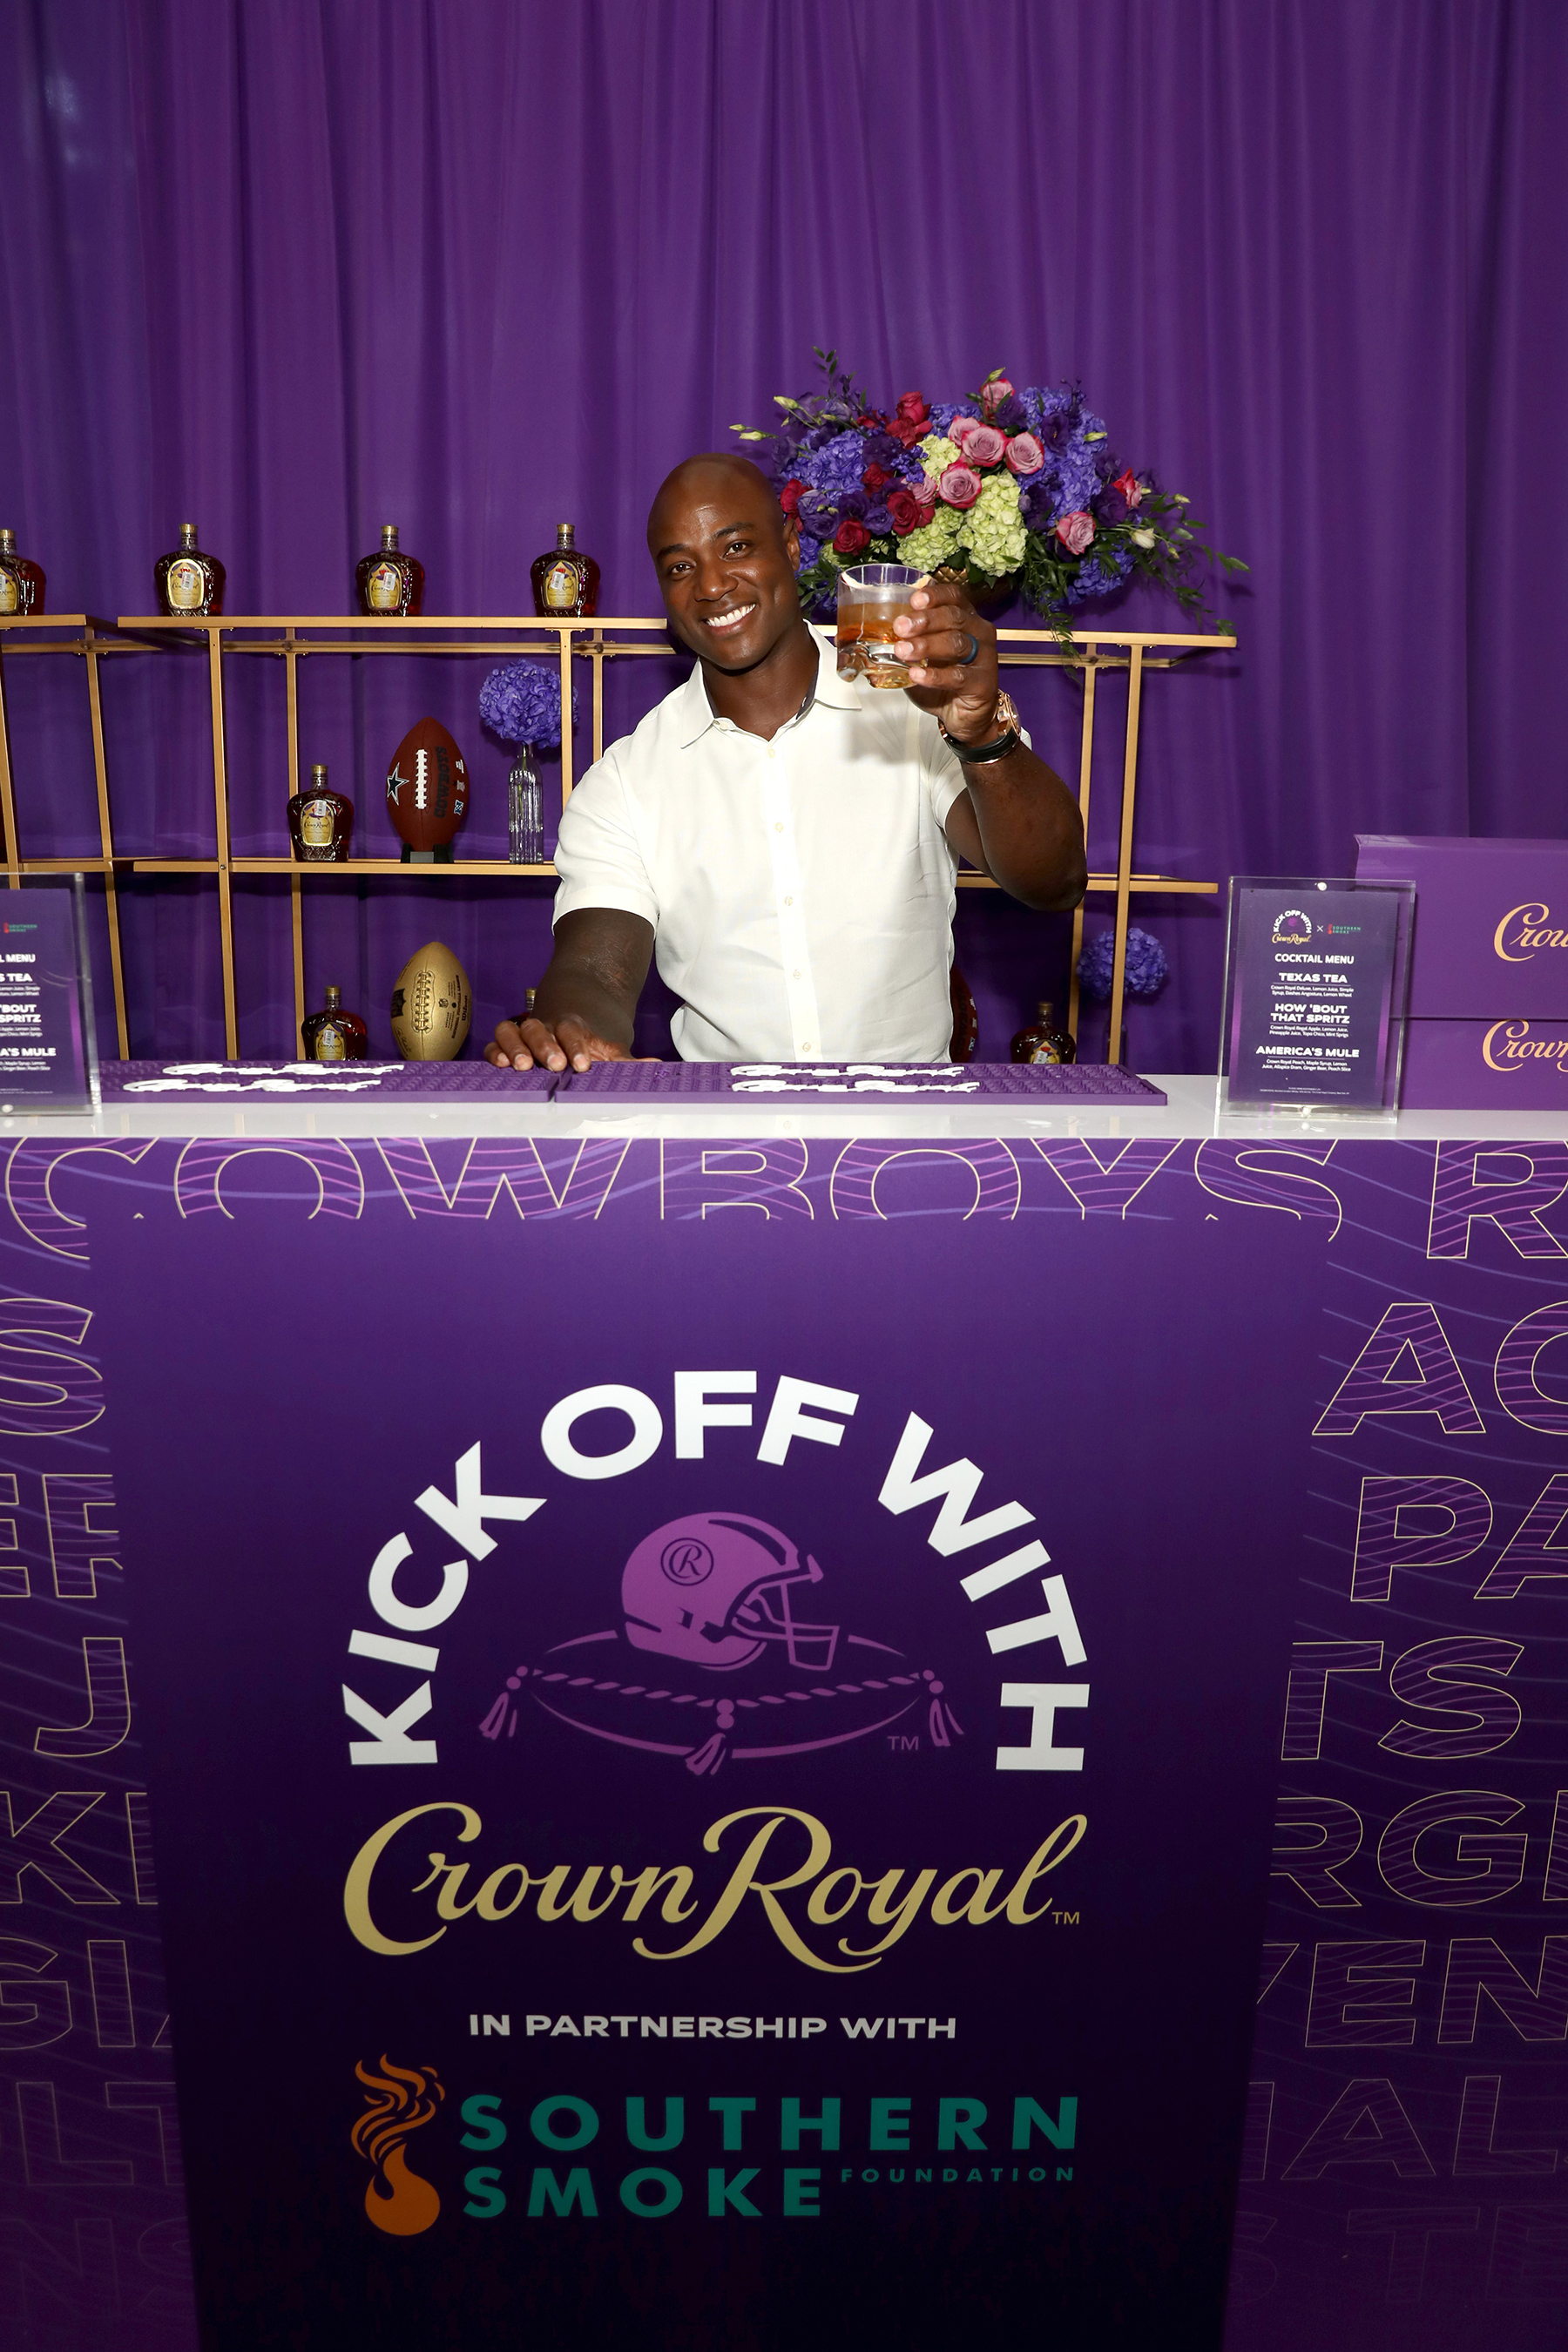 Dallas Cowboys legend DeMarcus Ware joins Crown Royal to support hospitality workers during the brand's 'Kick Off with Crown Royal' event at AT&T Stadium on Wednesday, September 8.